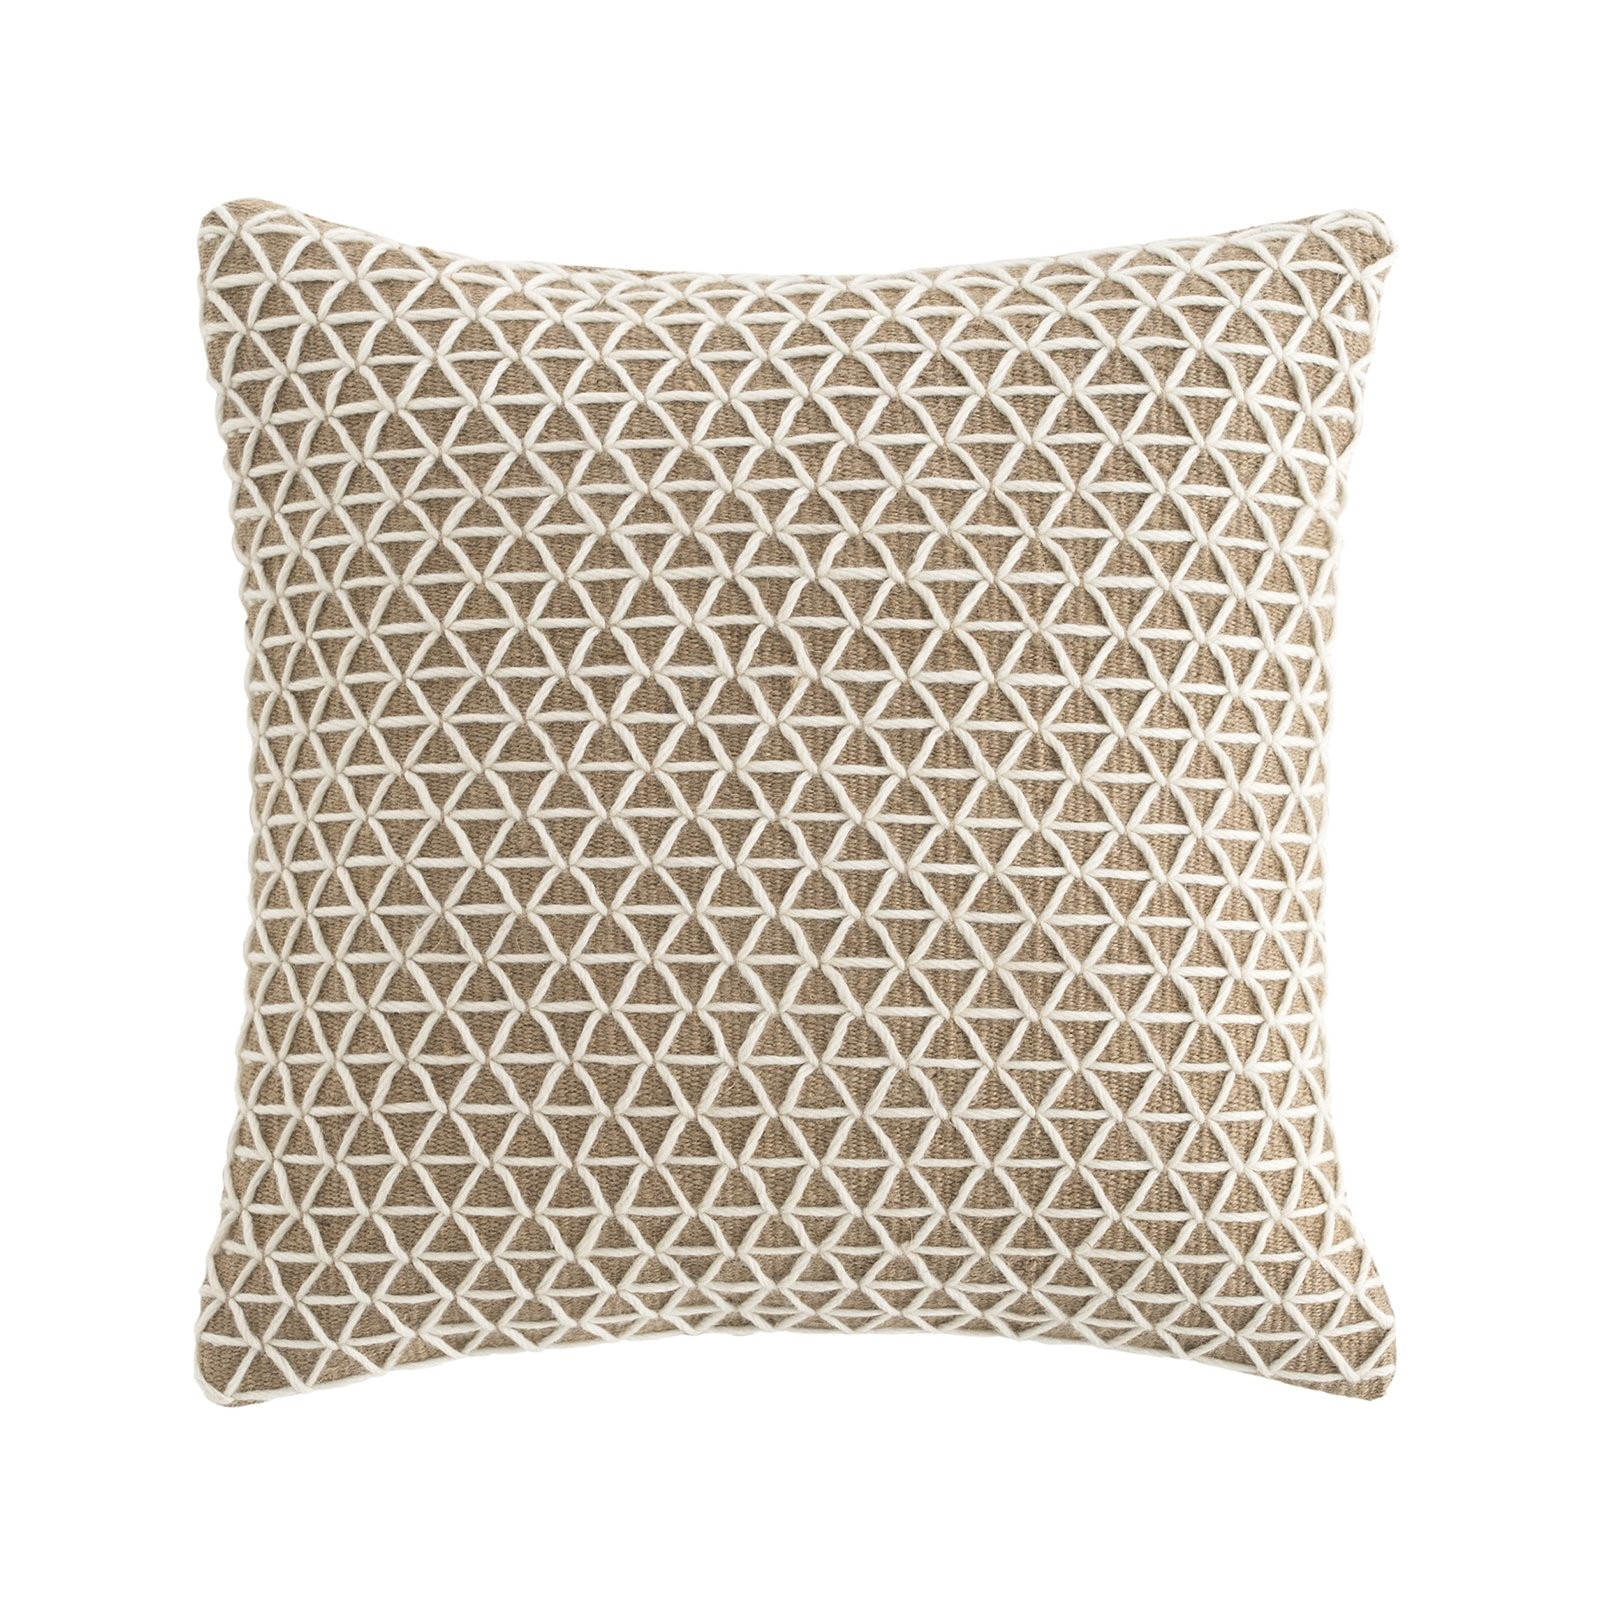 Gan Raw Collection White Square Cushion